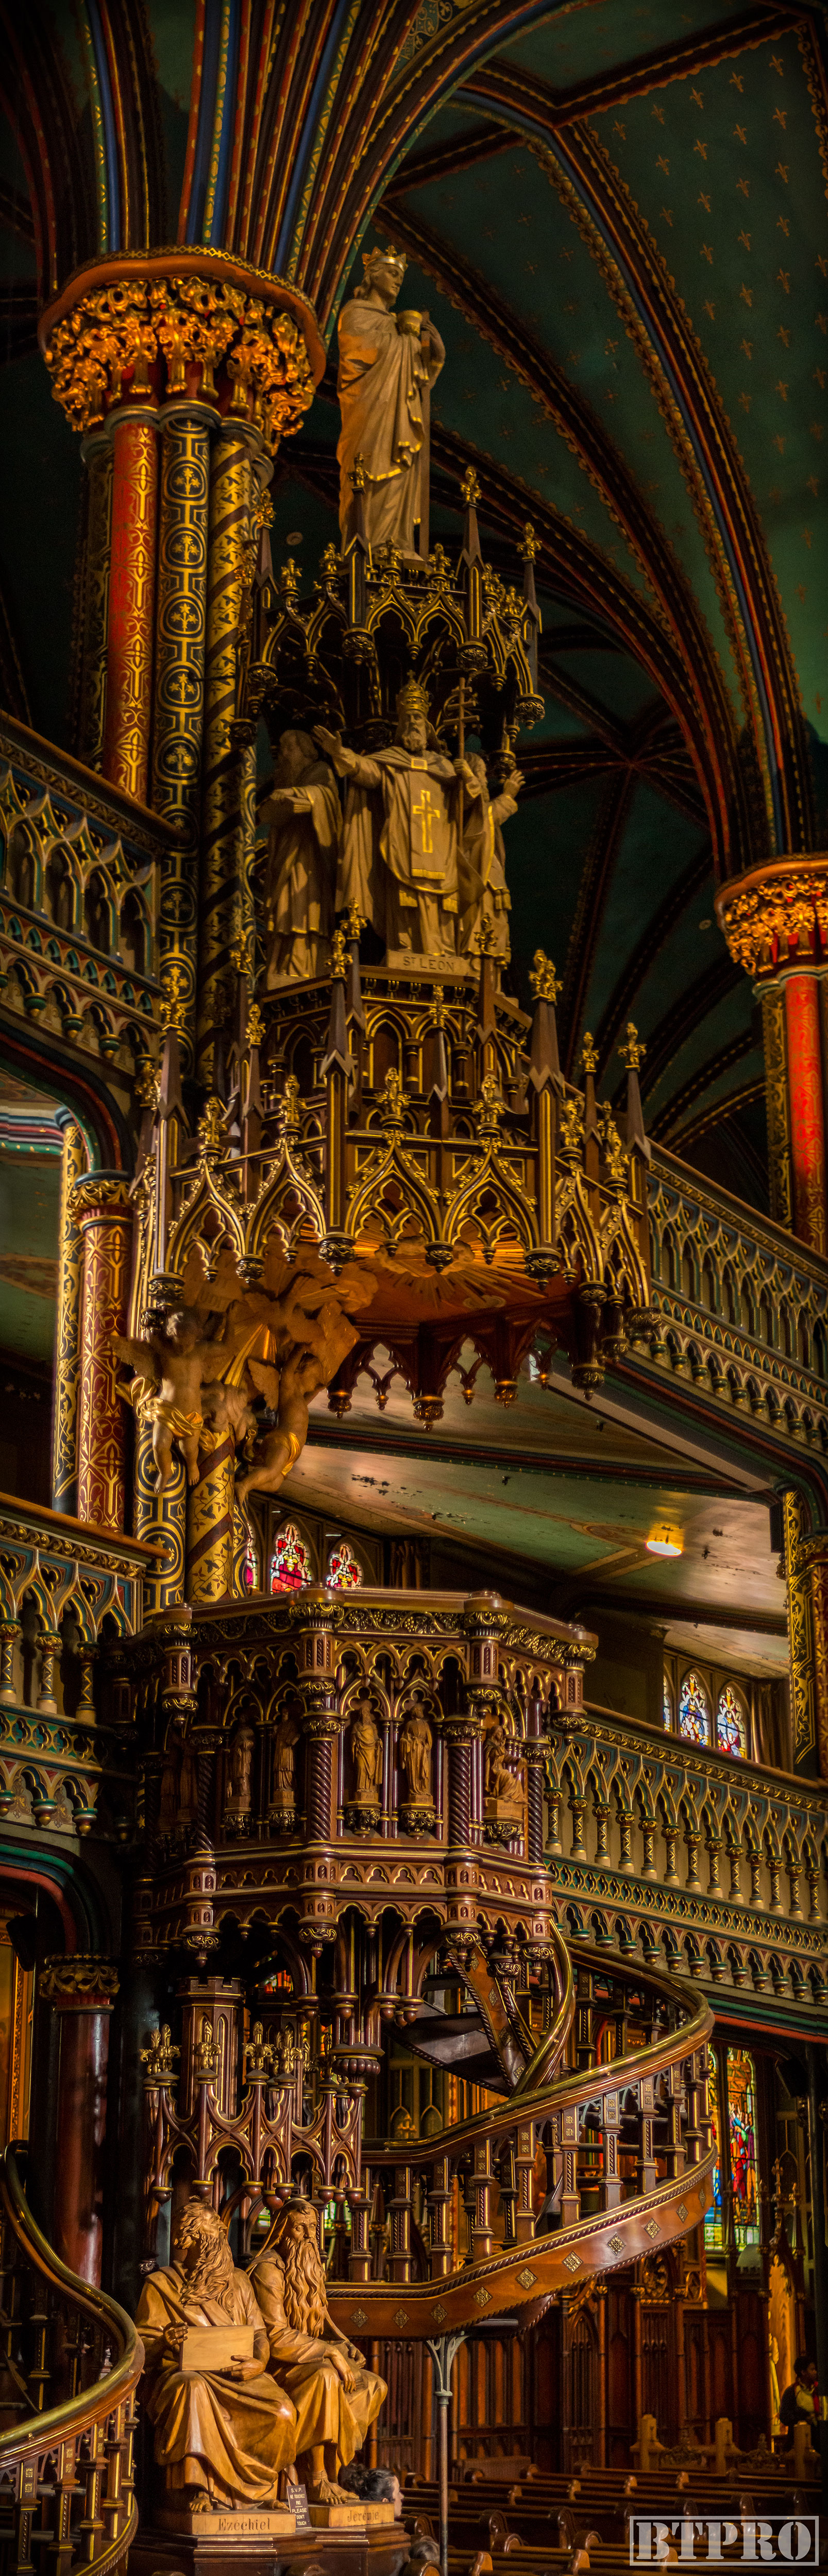 notre dame, notre dame basilica, church, cathedral, travel, place darmes, canada, religion, panorama, pano, vertical pano